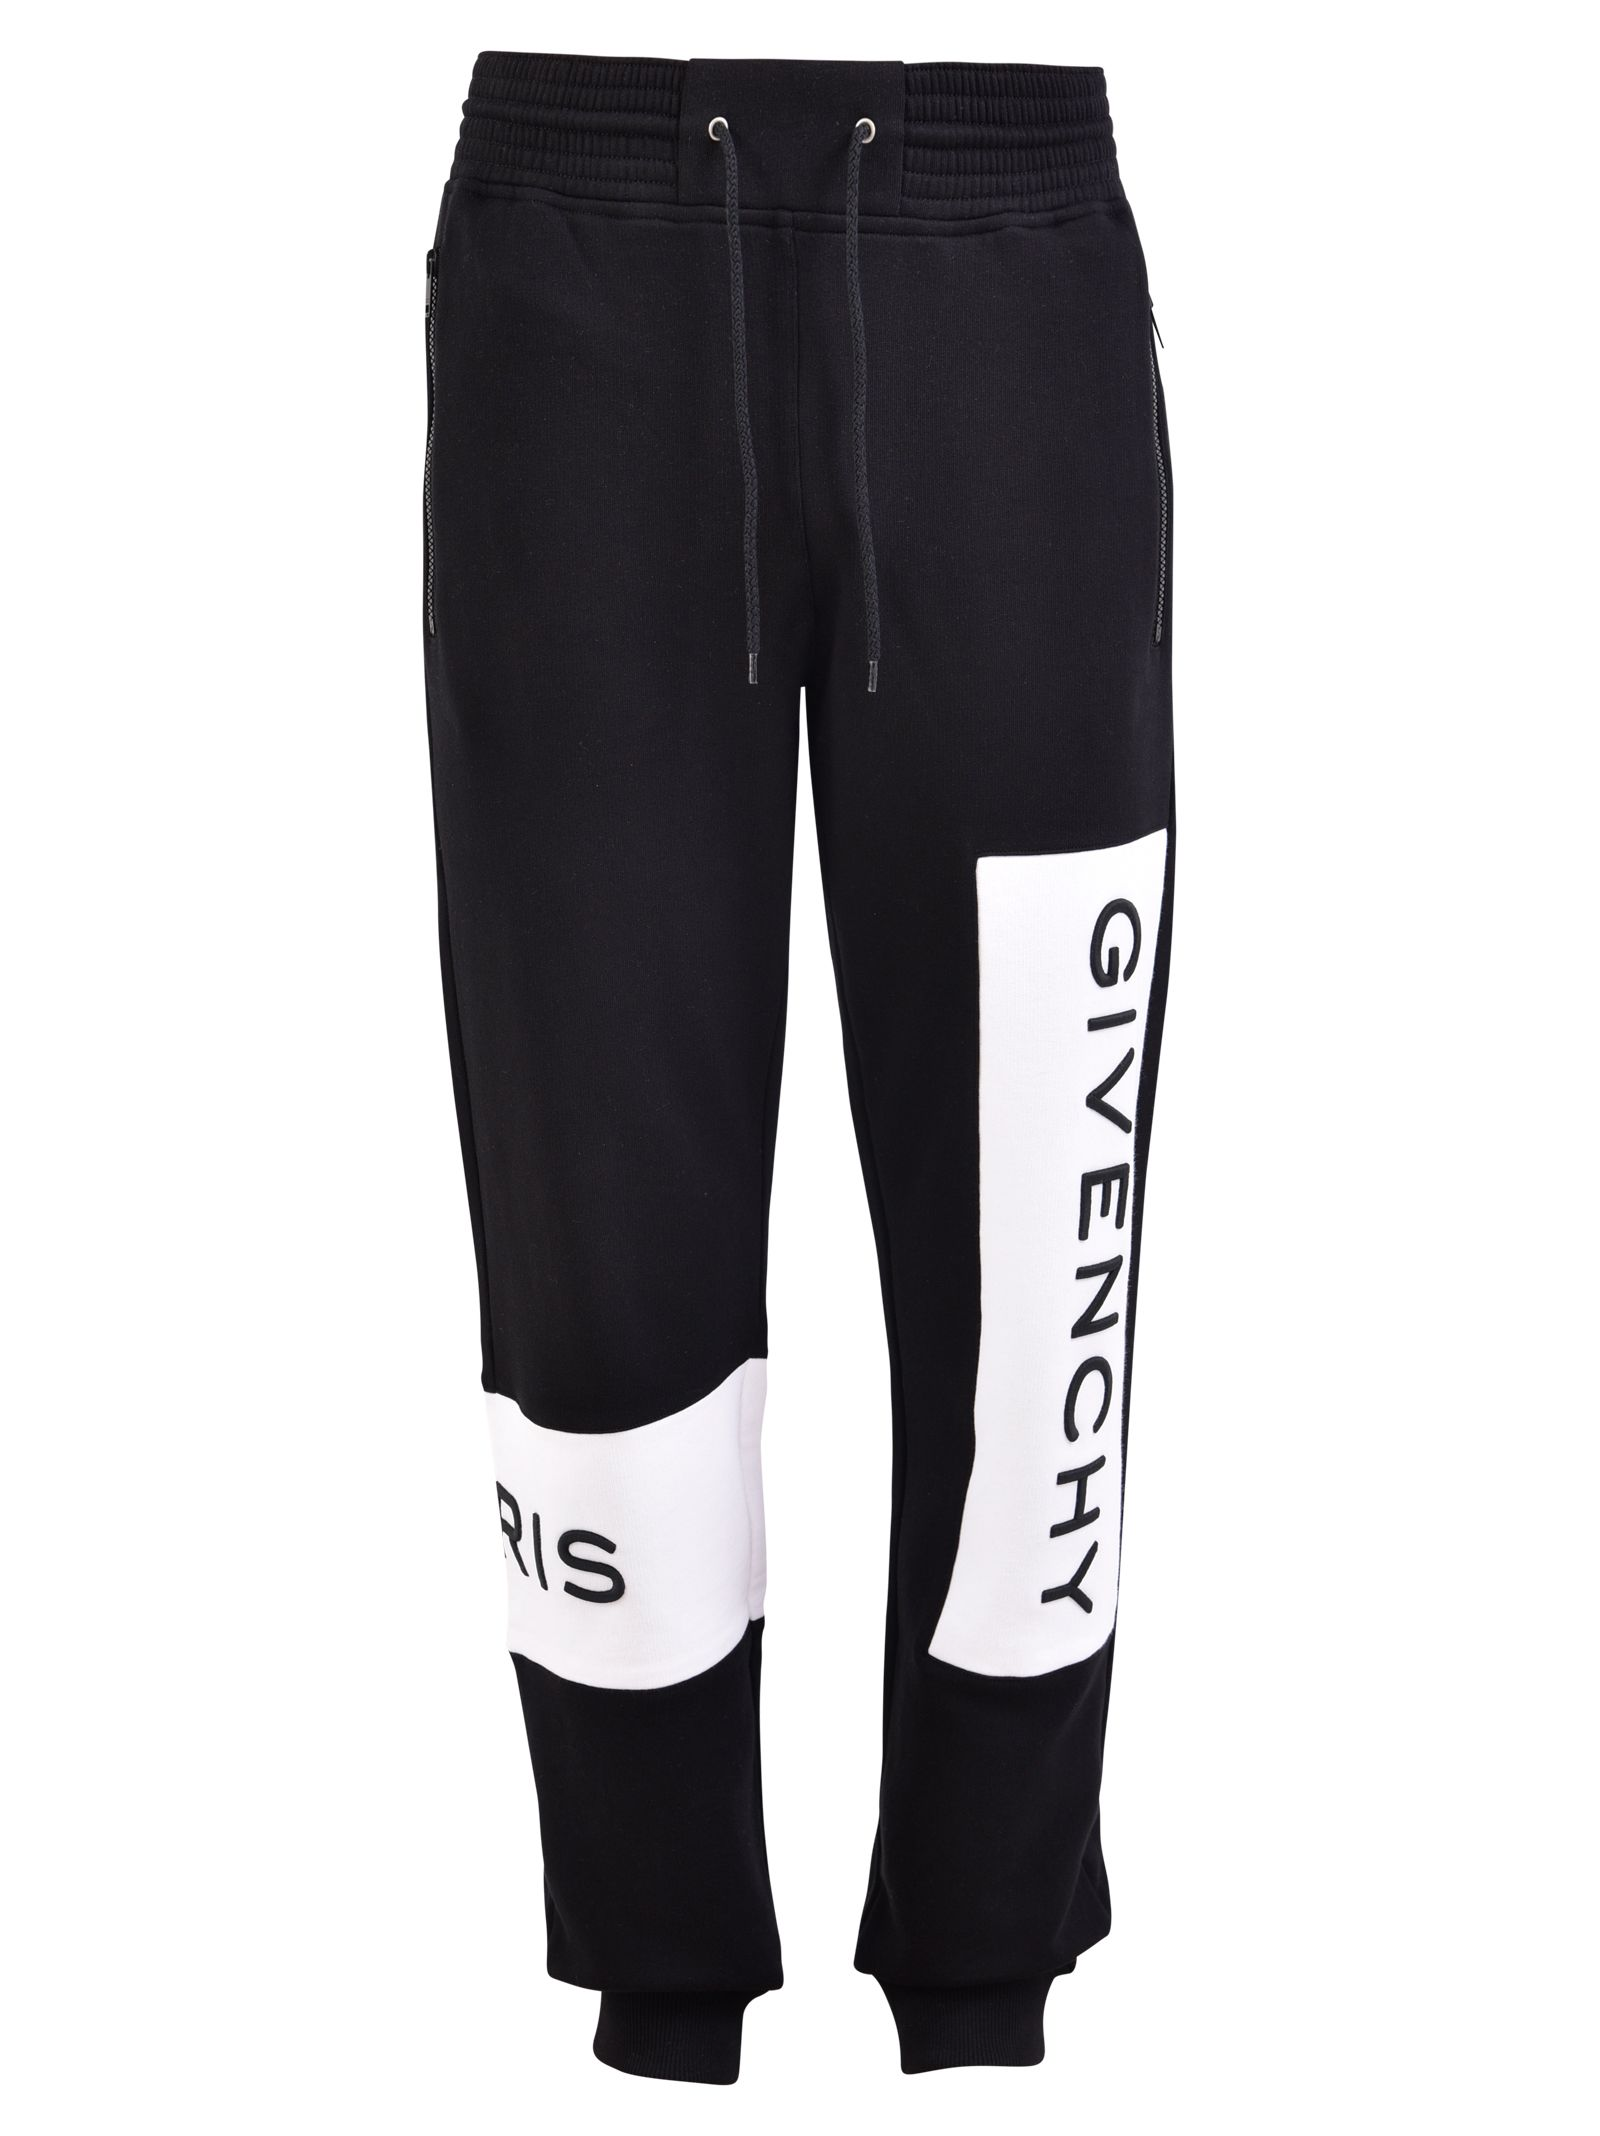 Givenchy Patched Sweatpants